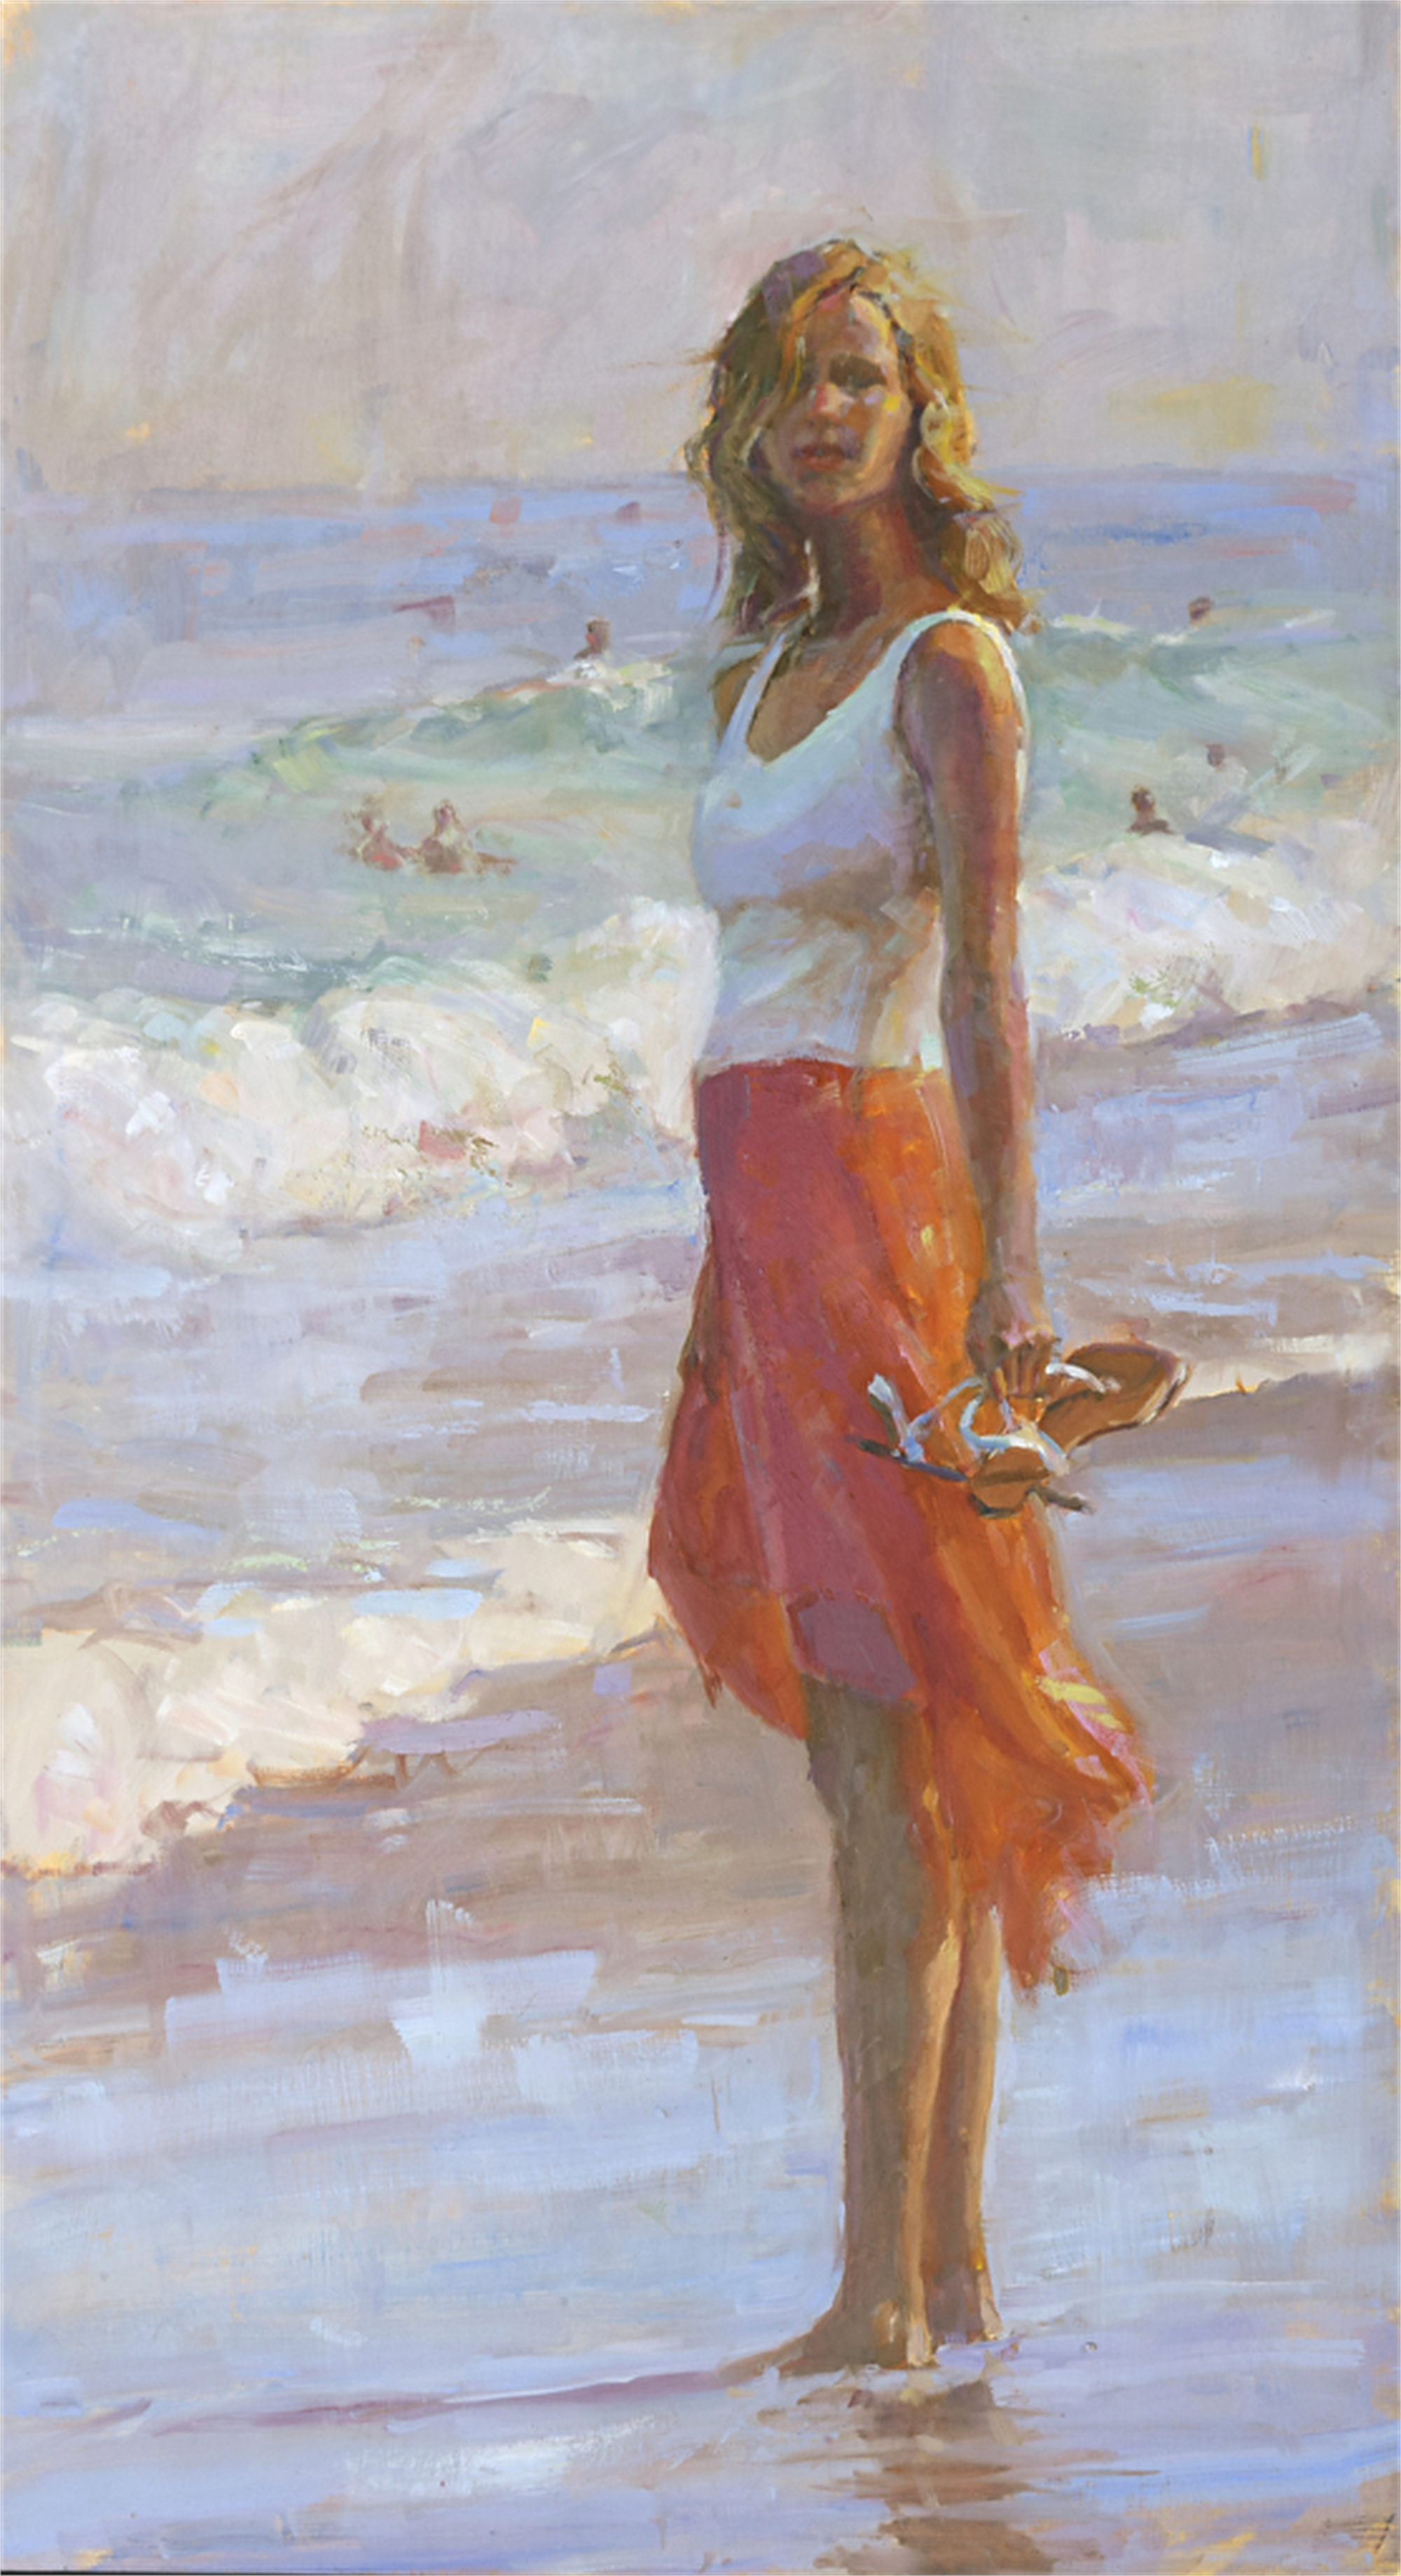 Girl With the Bright Orange Skirt by Nicole White Kennedy